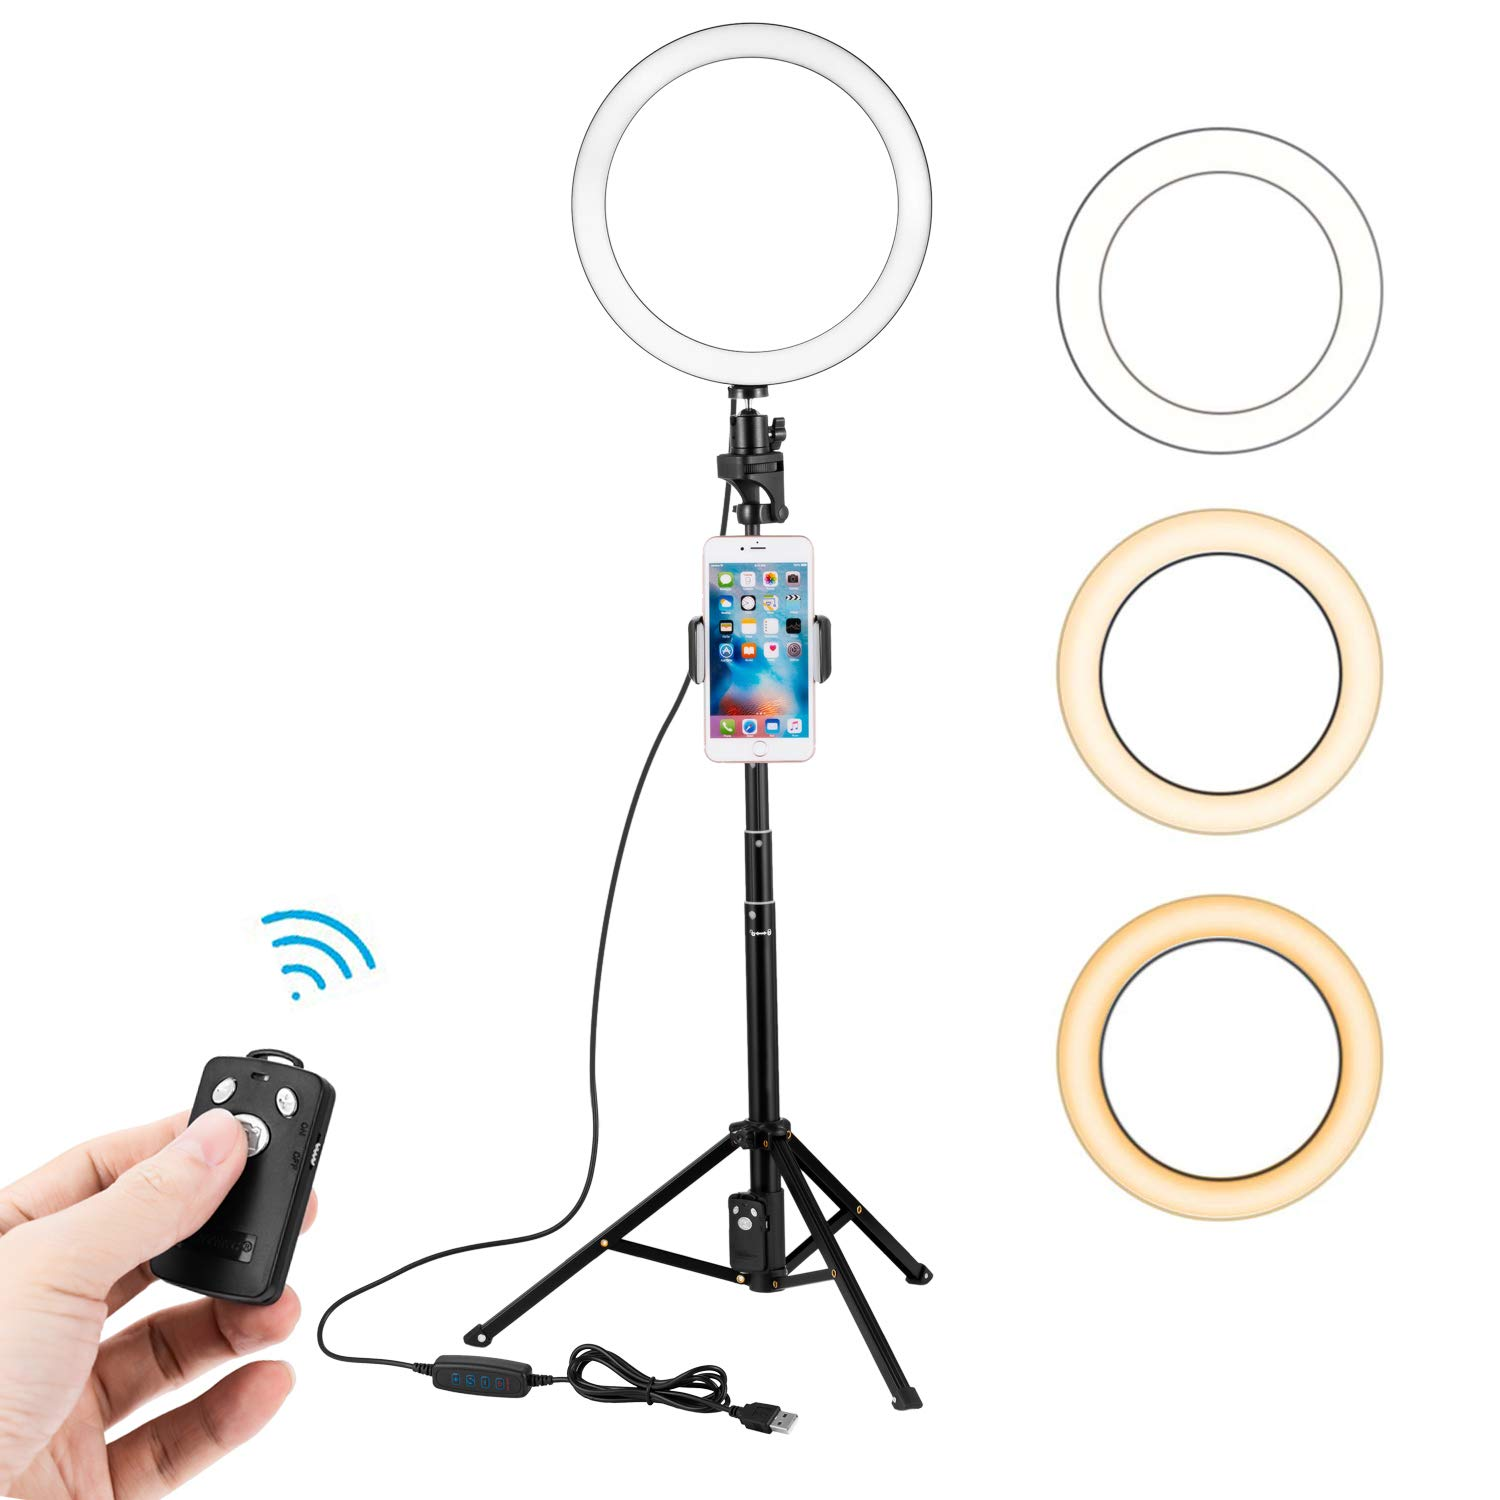 OMZER 10 Inch Selfie LED Ring Light with Extendable Tripod Stand & Cell Phone Holder,Dimmable Desktop Led Camera Light Ring with 3 Light Mode for YouTube Video and Live Stream/Makeup/Photography